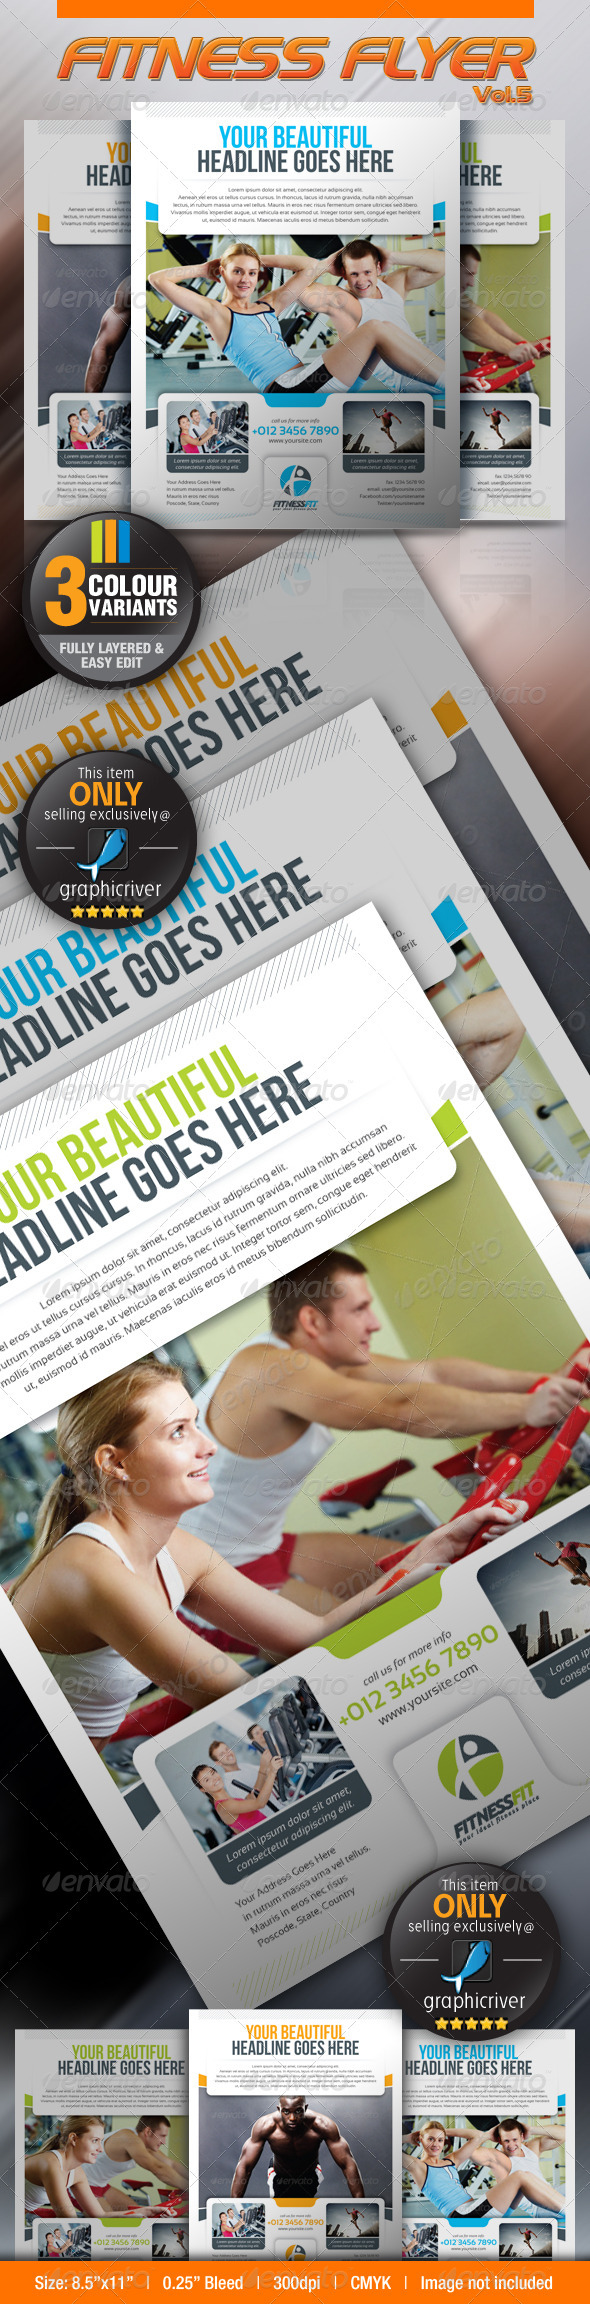 GraphicRiver Fitness Flyer Vol.5 3014206